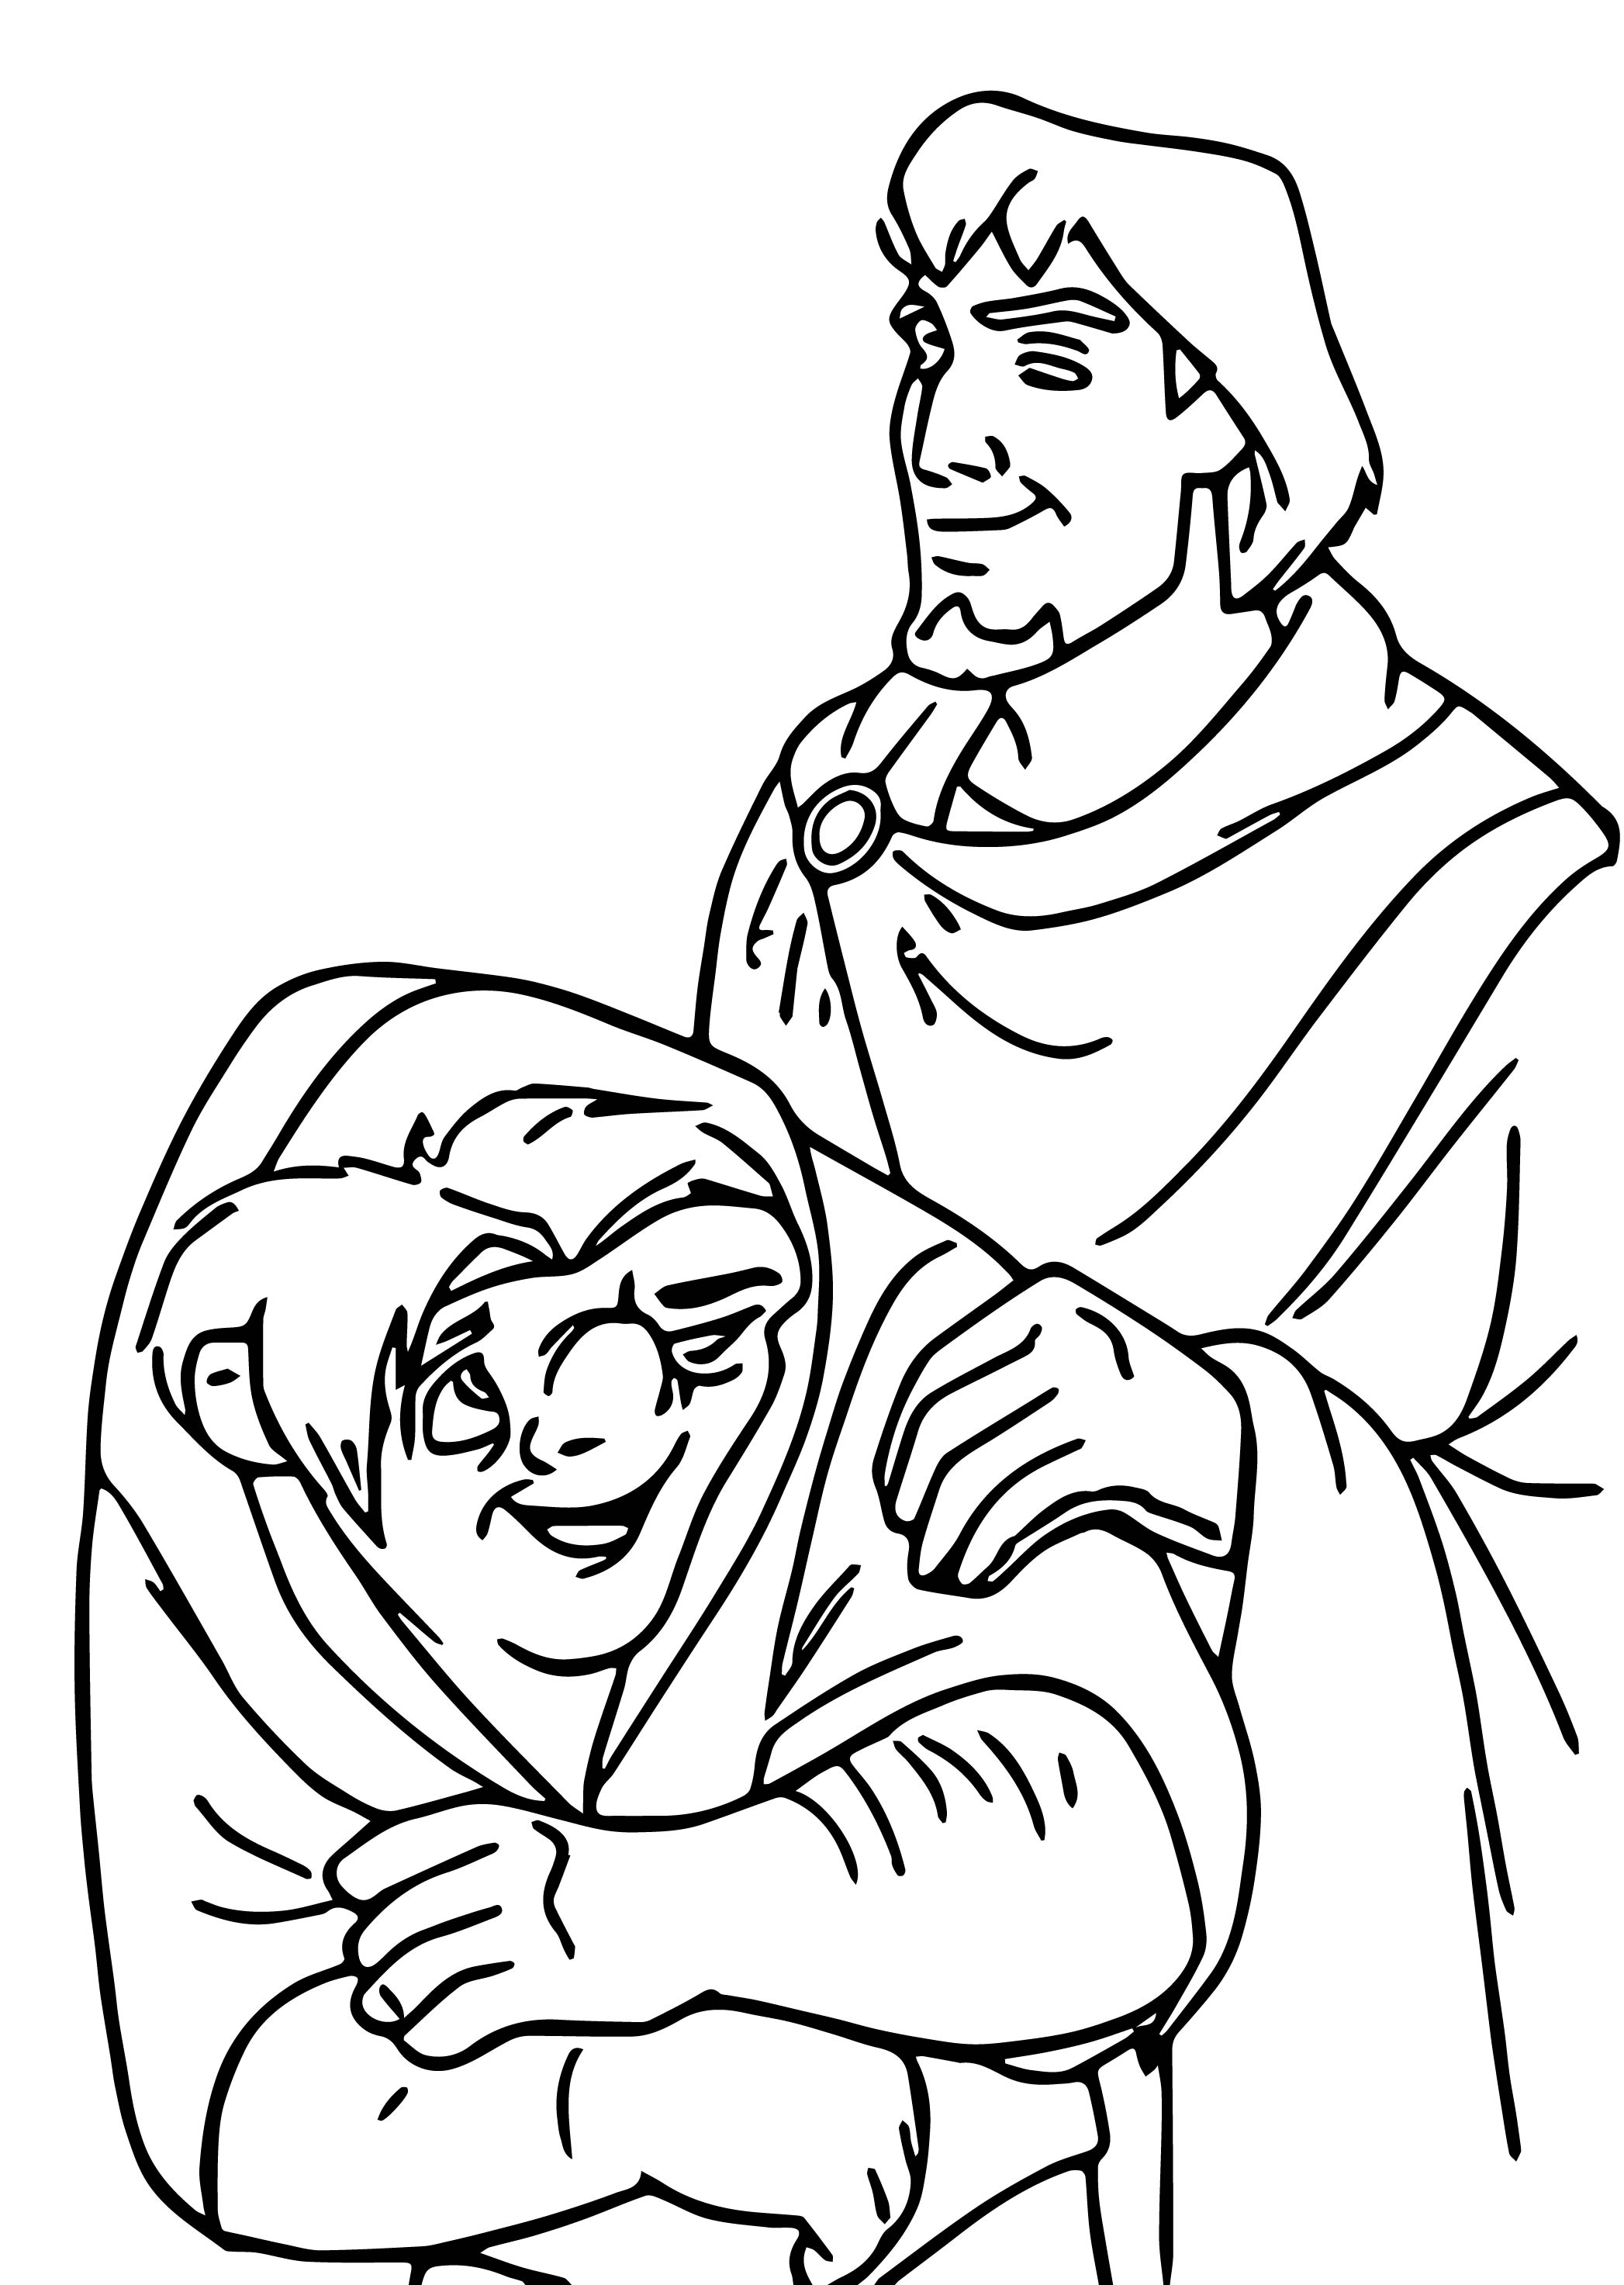 The Hunchback Of Notre Dame Quasi Phoebus Cartoon Coloring Pages